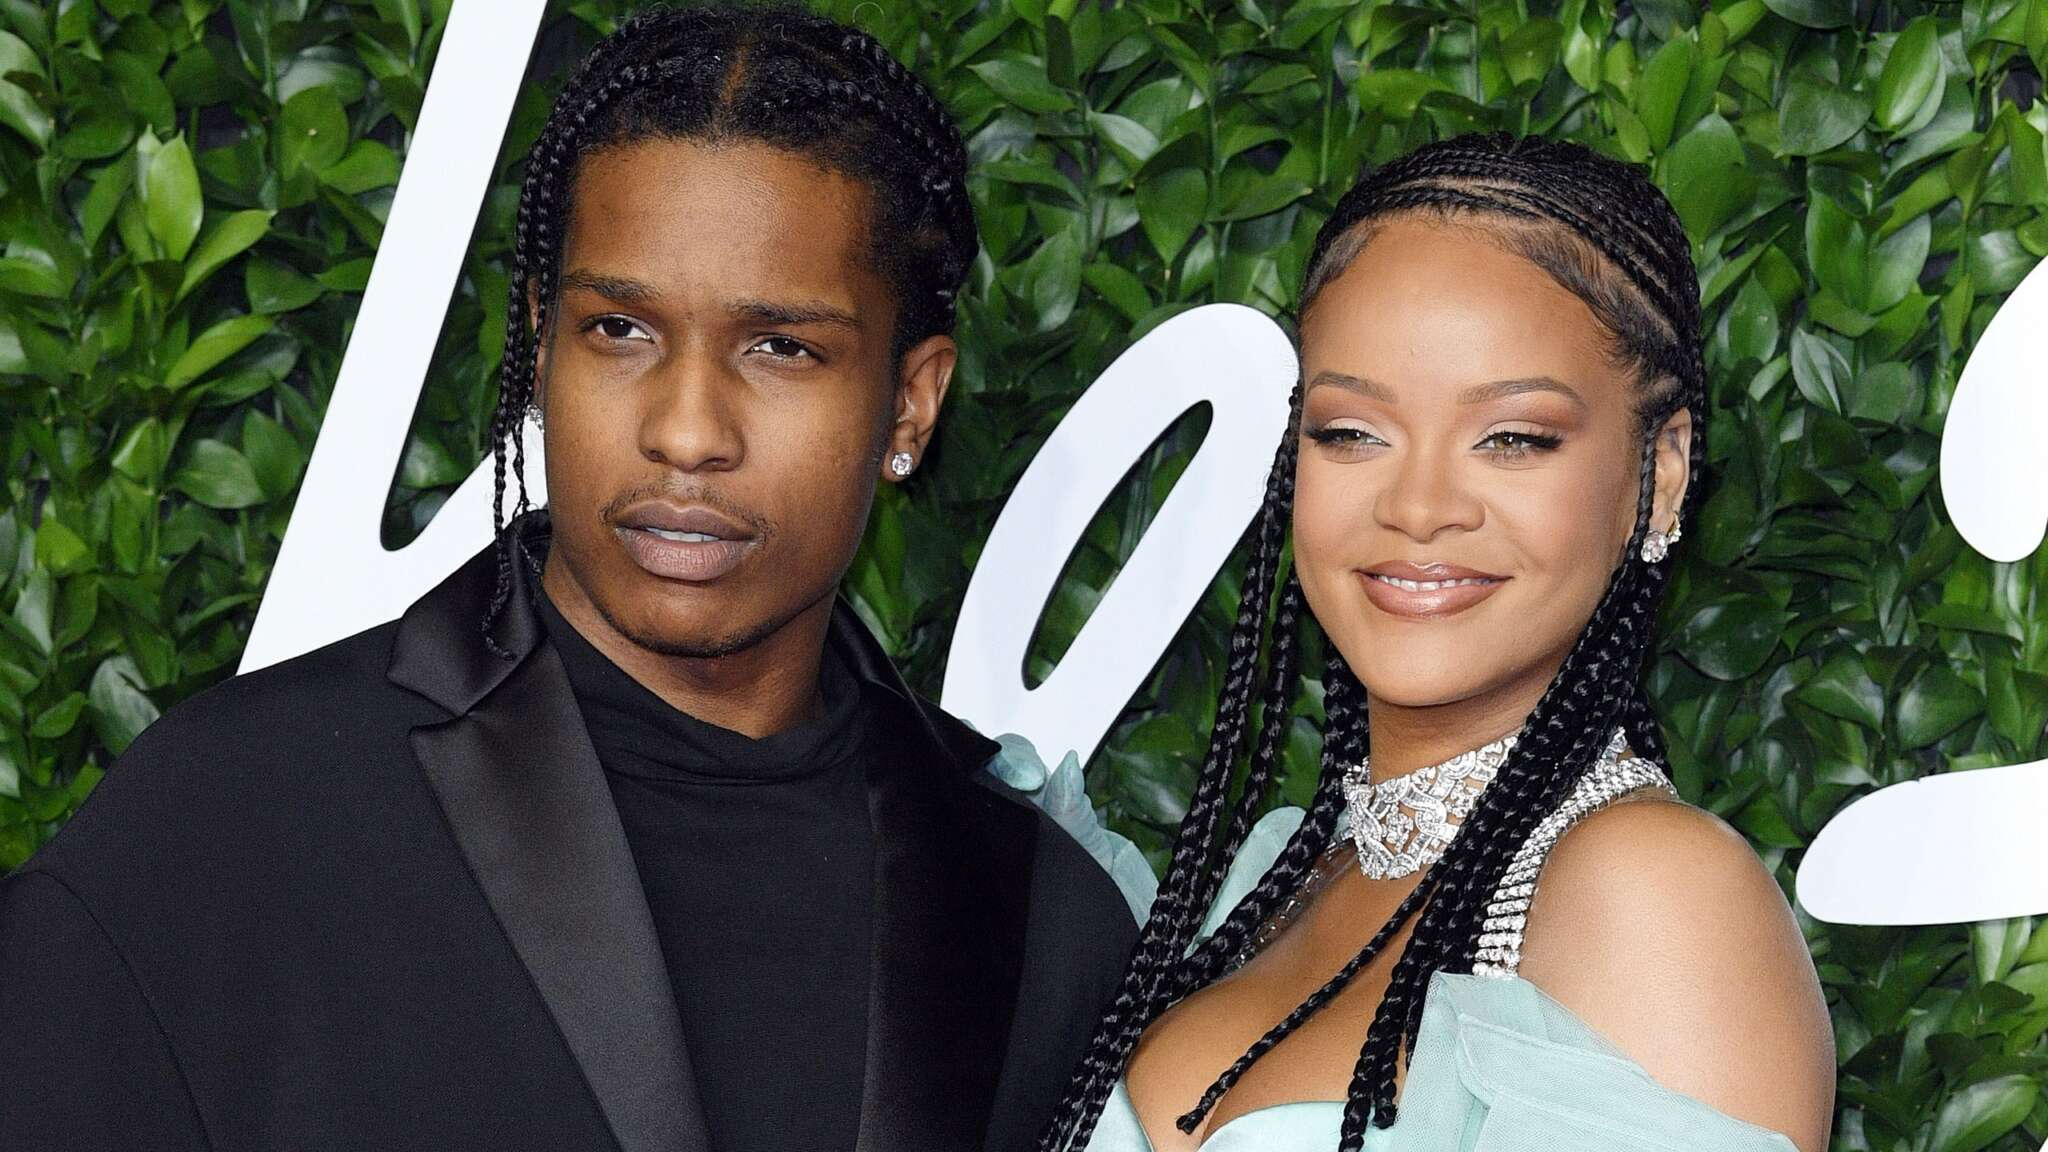 Rihanna And ASAP Rocky – Here's How Her Loved Ones Reacted To Rihanna Bringing Her New BF Home For The Holidays!